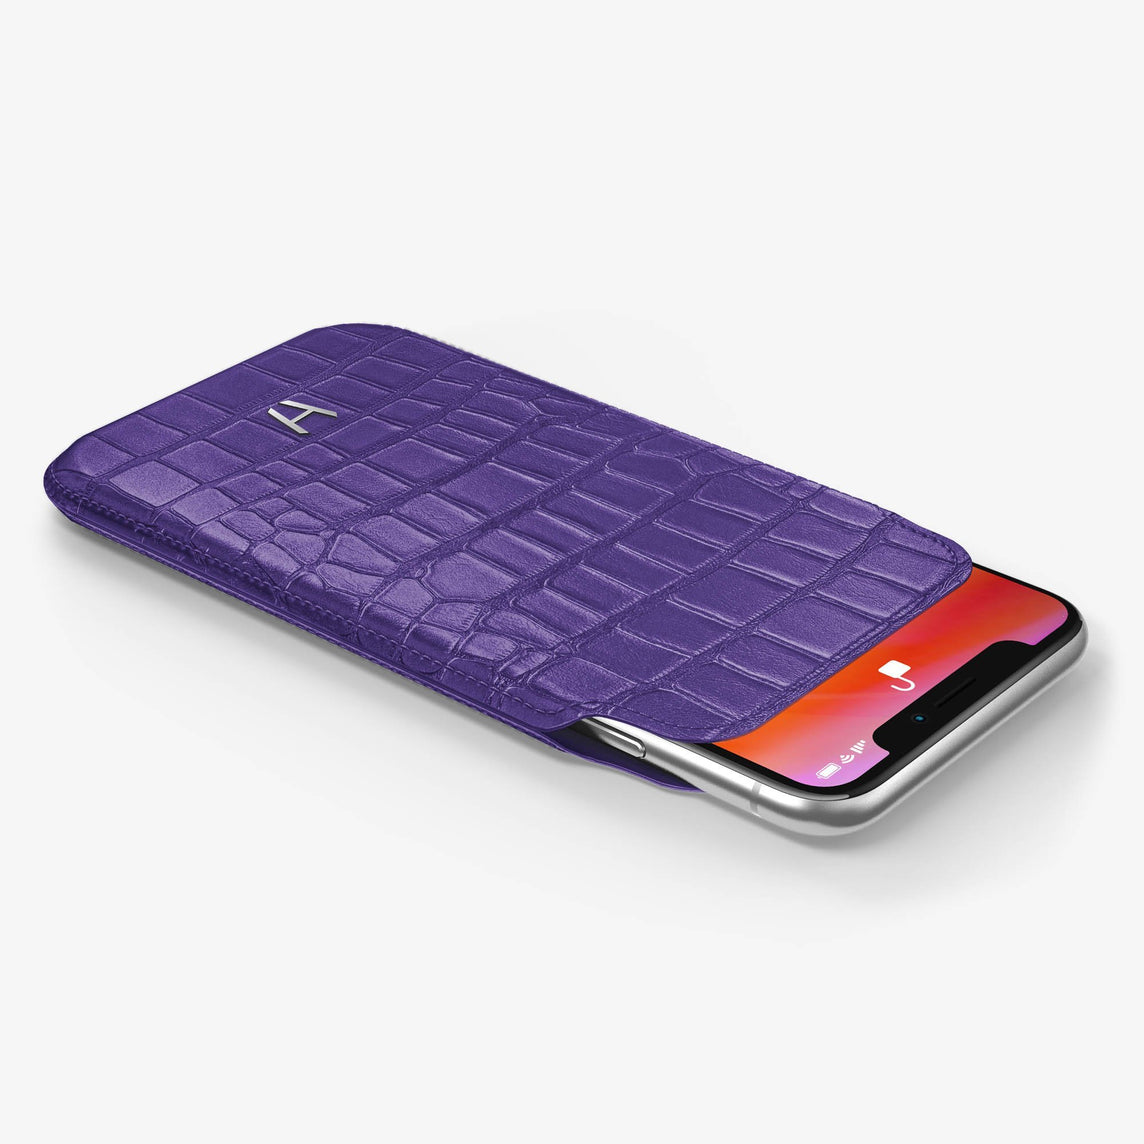 Alligator [iPhone Sleeve Case] [model:iphone-xsmax-case] [colour:purple] [finishing:stainless-steel]